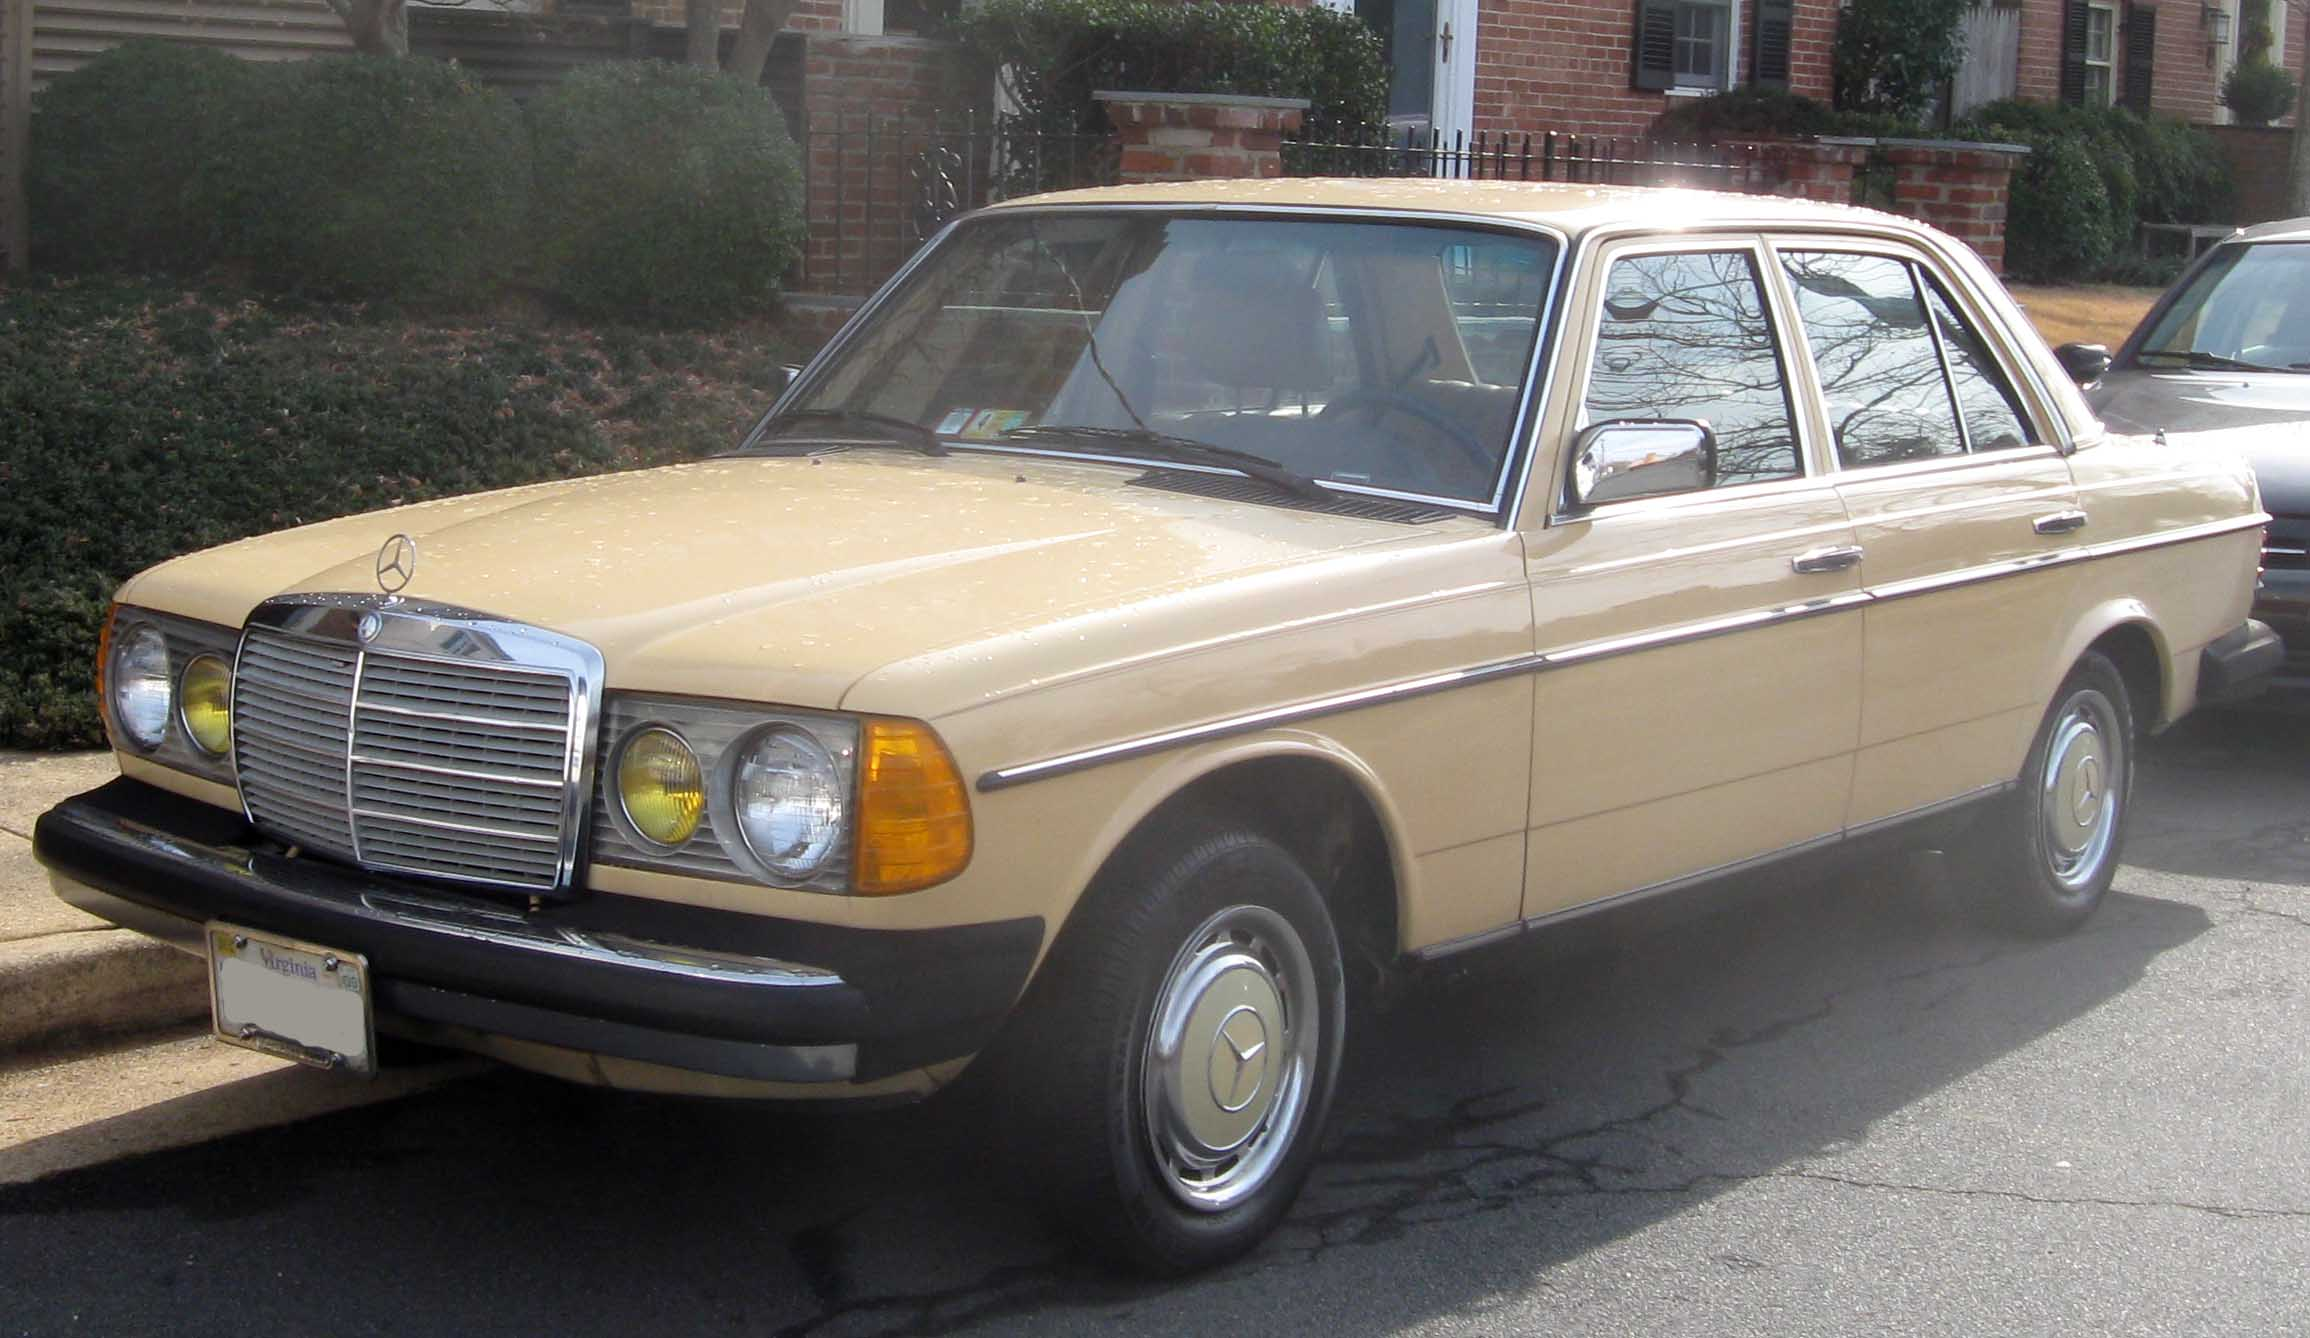 Mercedes benz forum w115 vs w123 240d engine difference for Mercedes benz forum